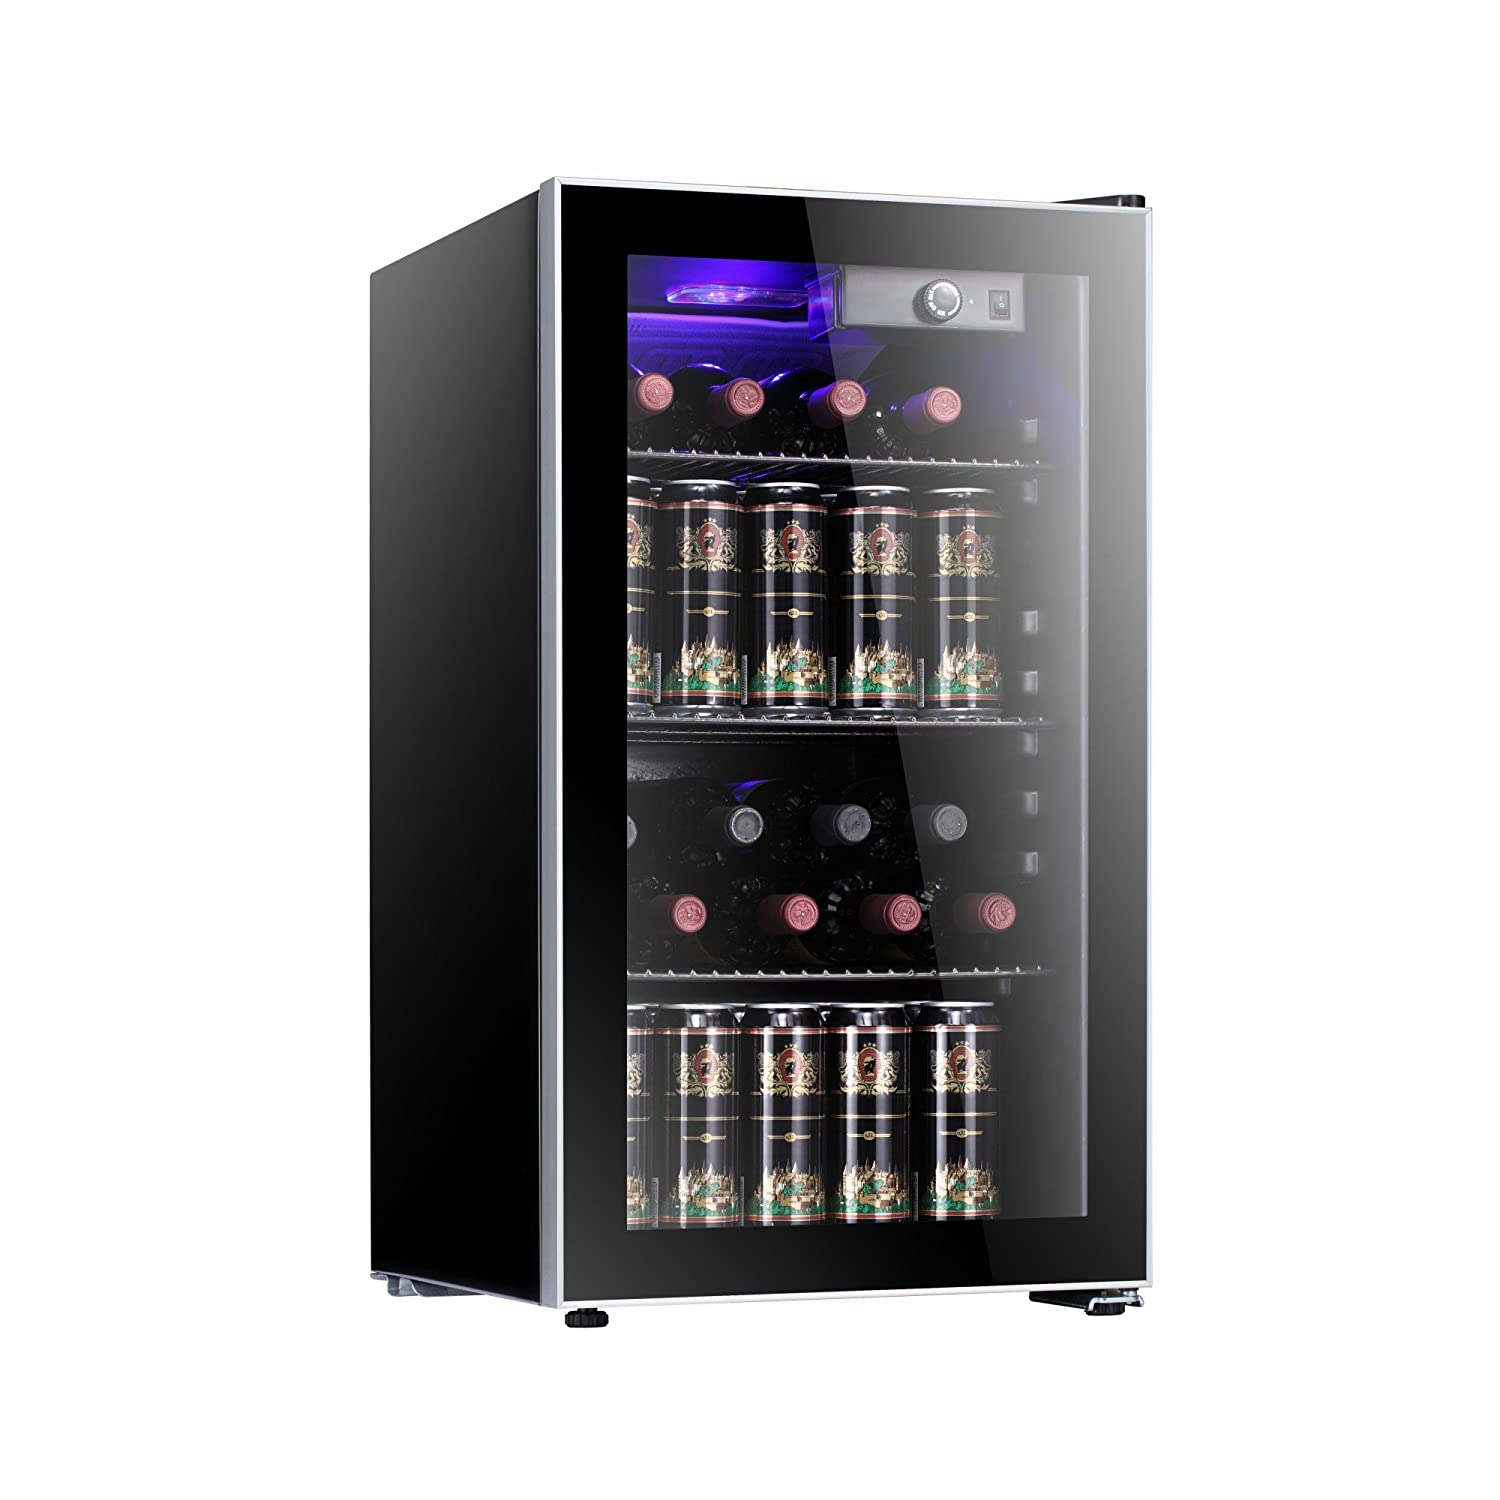 Antarctic Star 26 Bottle Wine Cooler/Cabinet Refigerator Small Wine Cellar Beer Counter Top Fridge Quiet Operation Compressor Freestanding Black